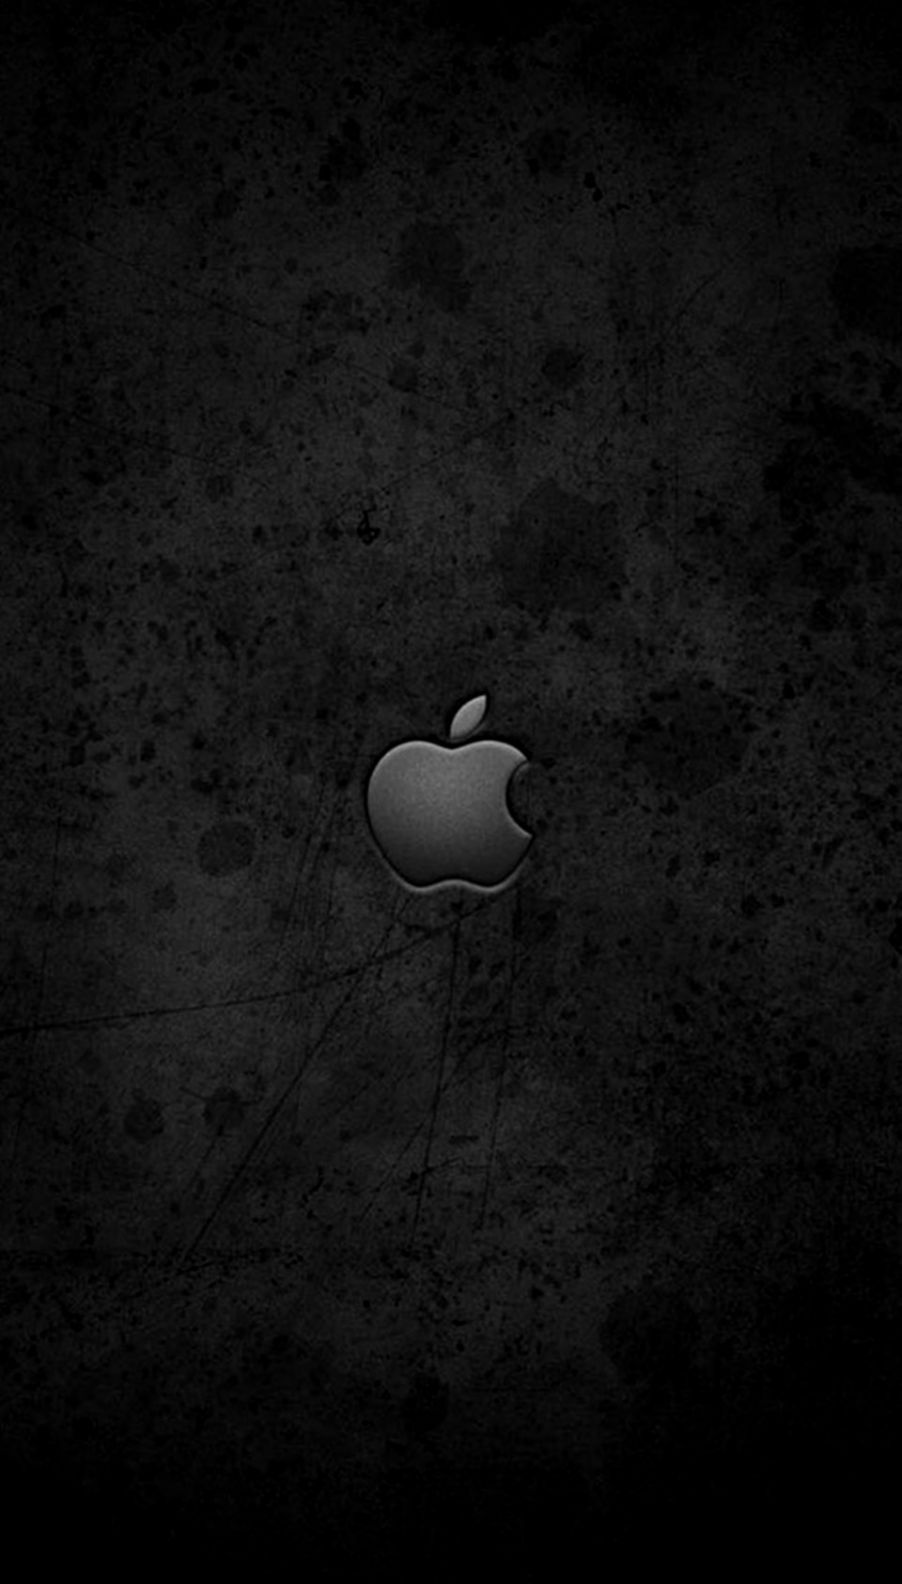 Unduh 7000+ Wallpaper Apple Hd Black